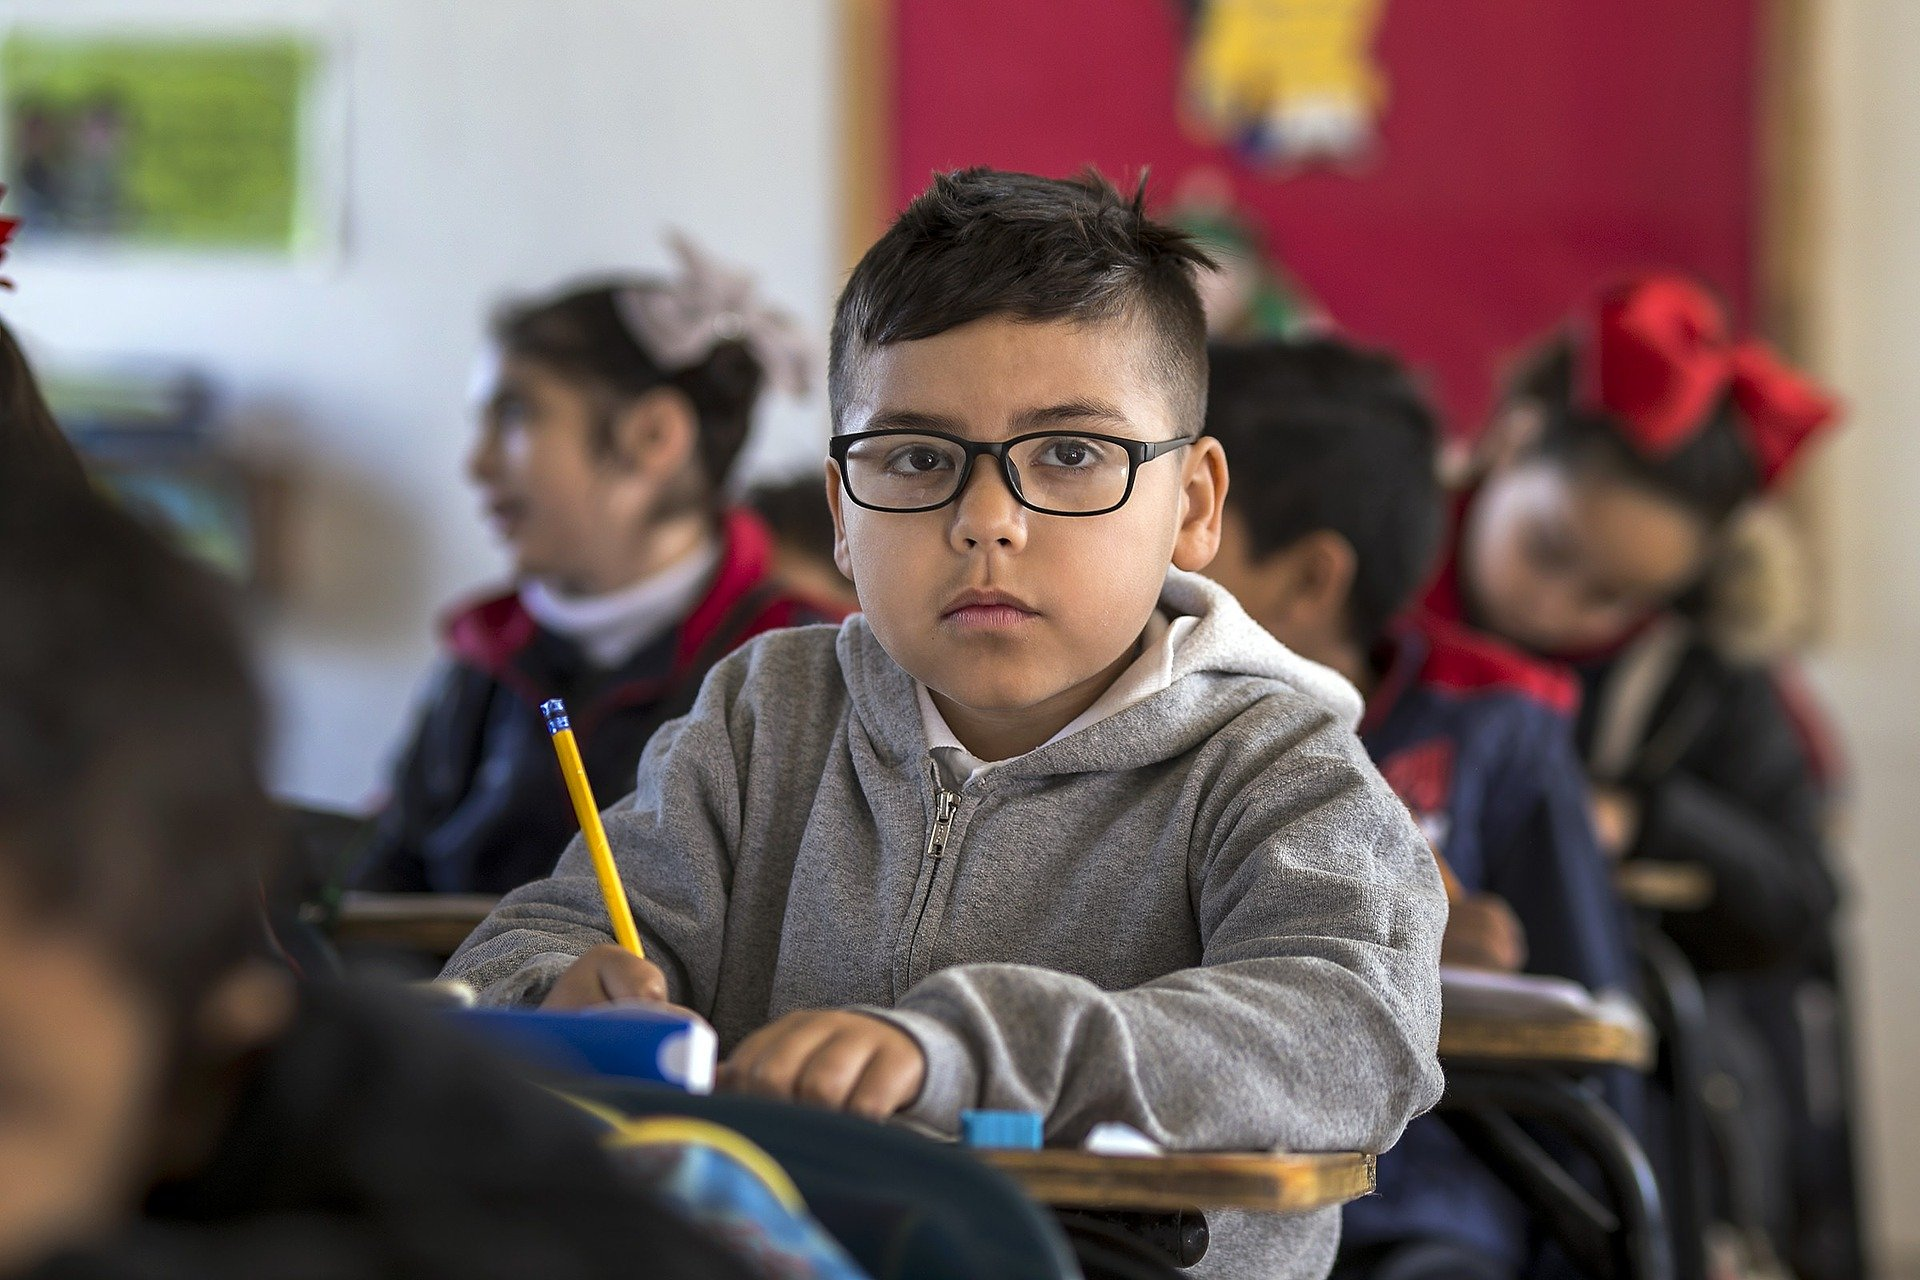 Image description: a young child with glasses at a desk in a classroom, pencil in hand.